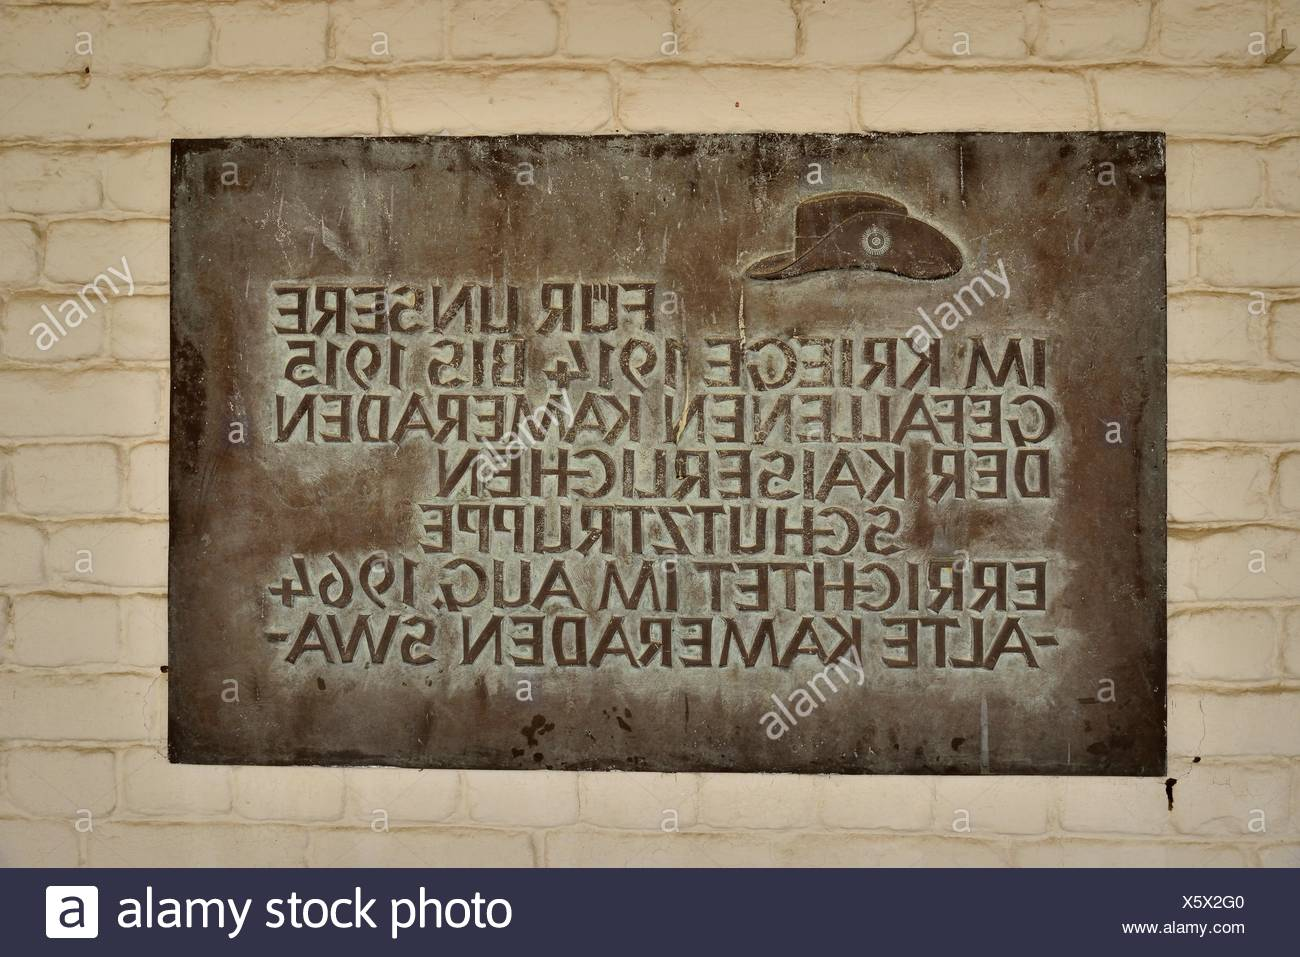 Commemorative Plaque for the fallen soldiers of the German colonial force in the courtyard of the Alte Feste, Windhoek, Namibia - Stock Image